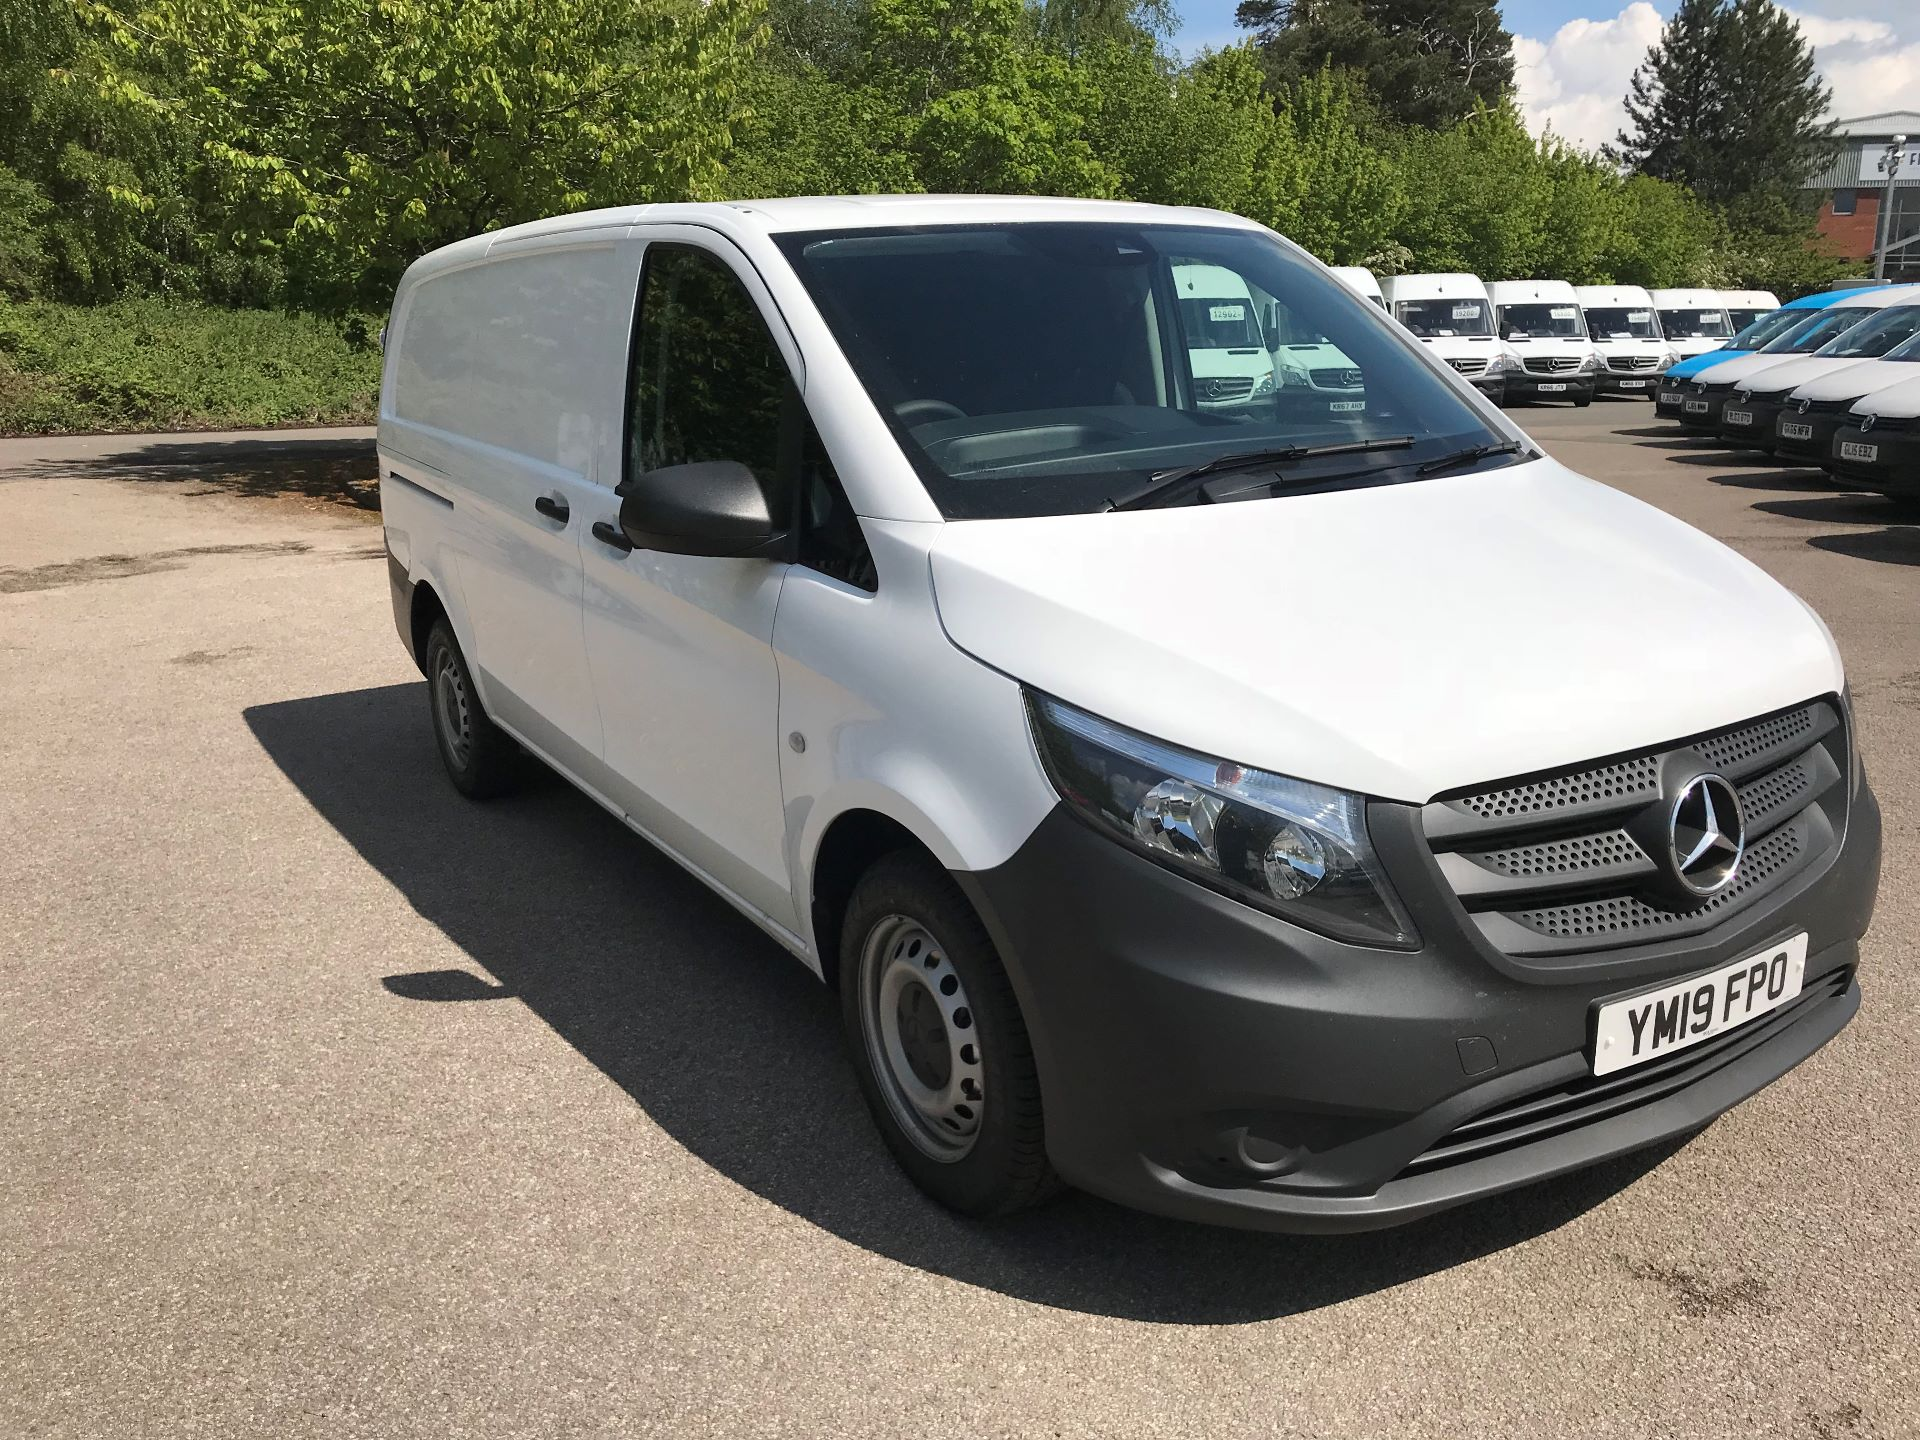 2019 Mercedes-Benz Vito 111Cdi Van Euro 6 Massive specification A/C (YM19FPO)